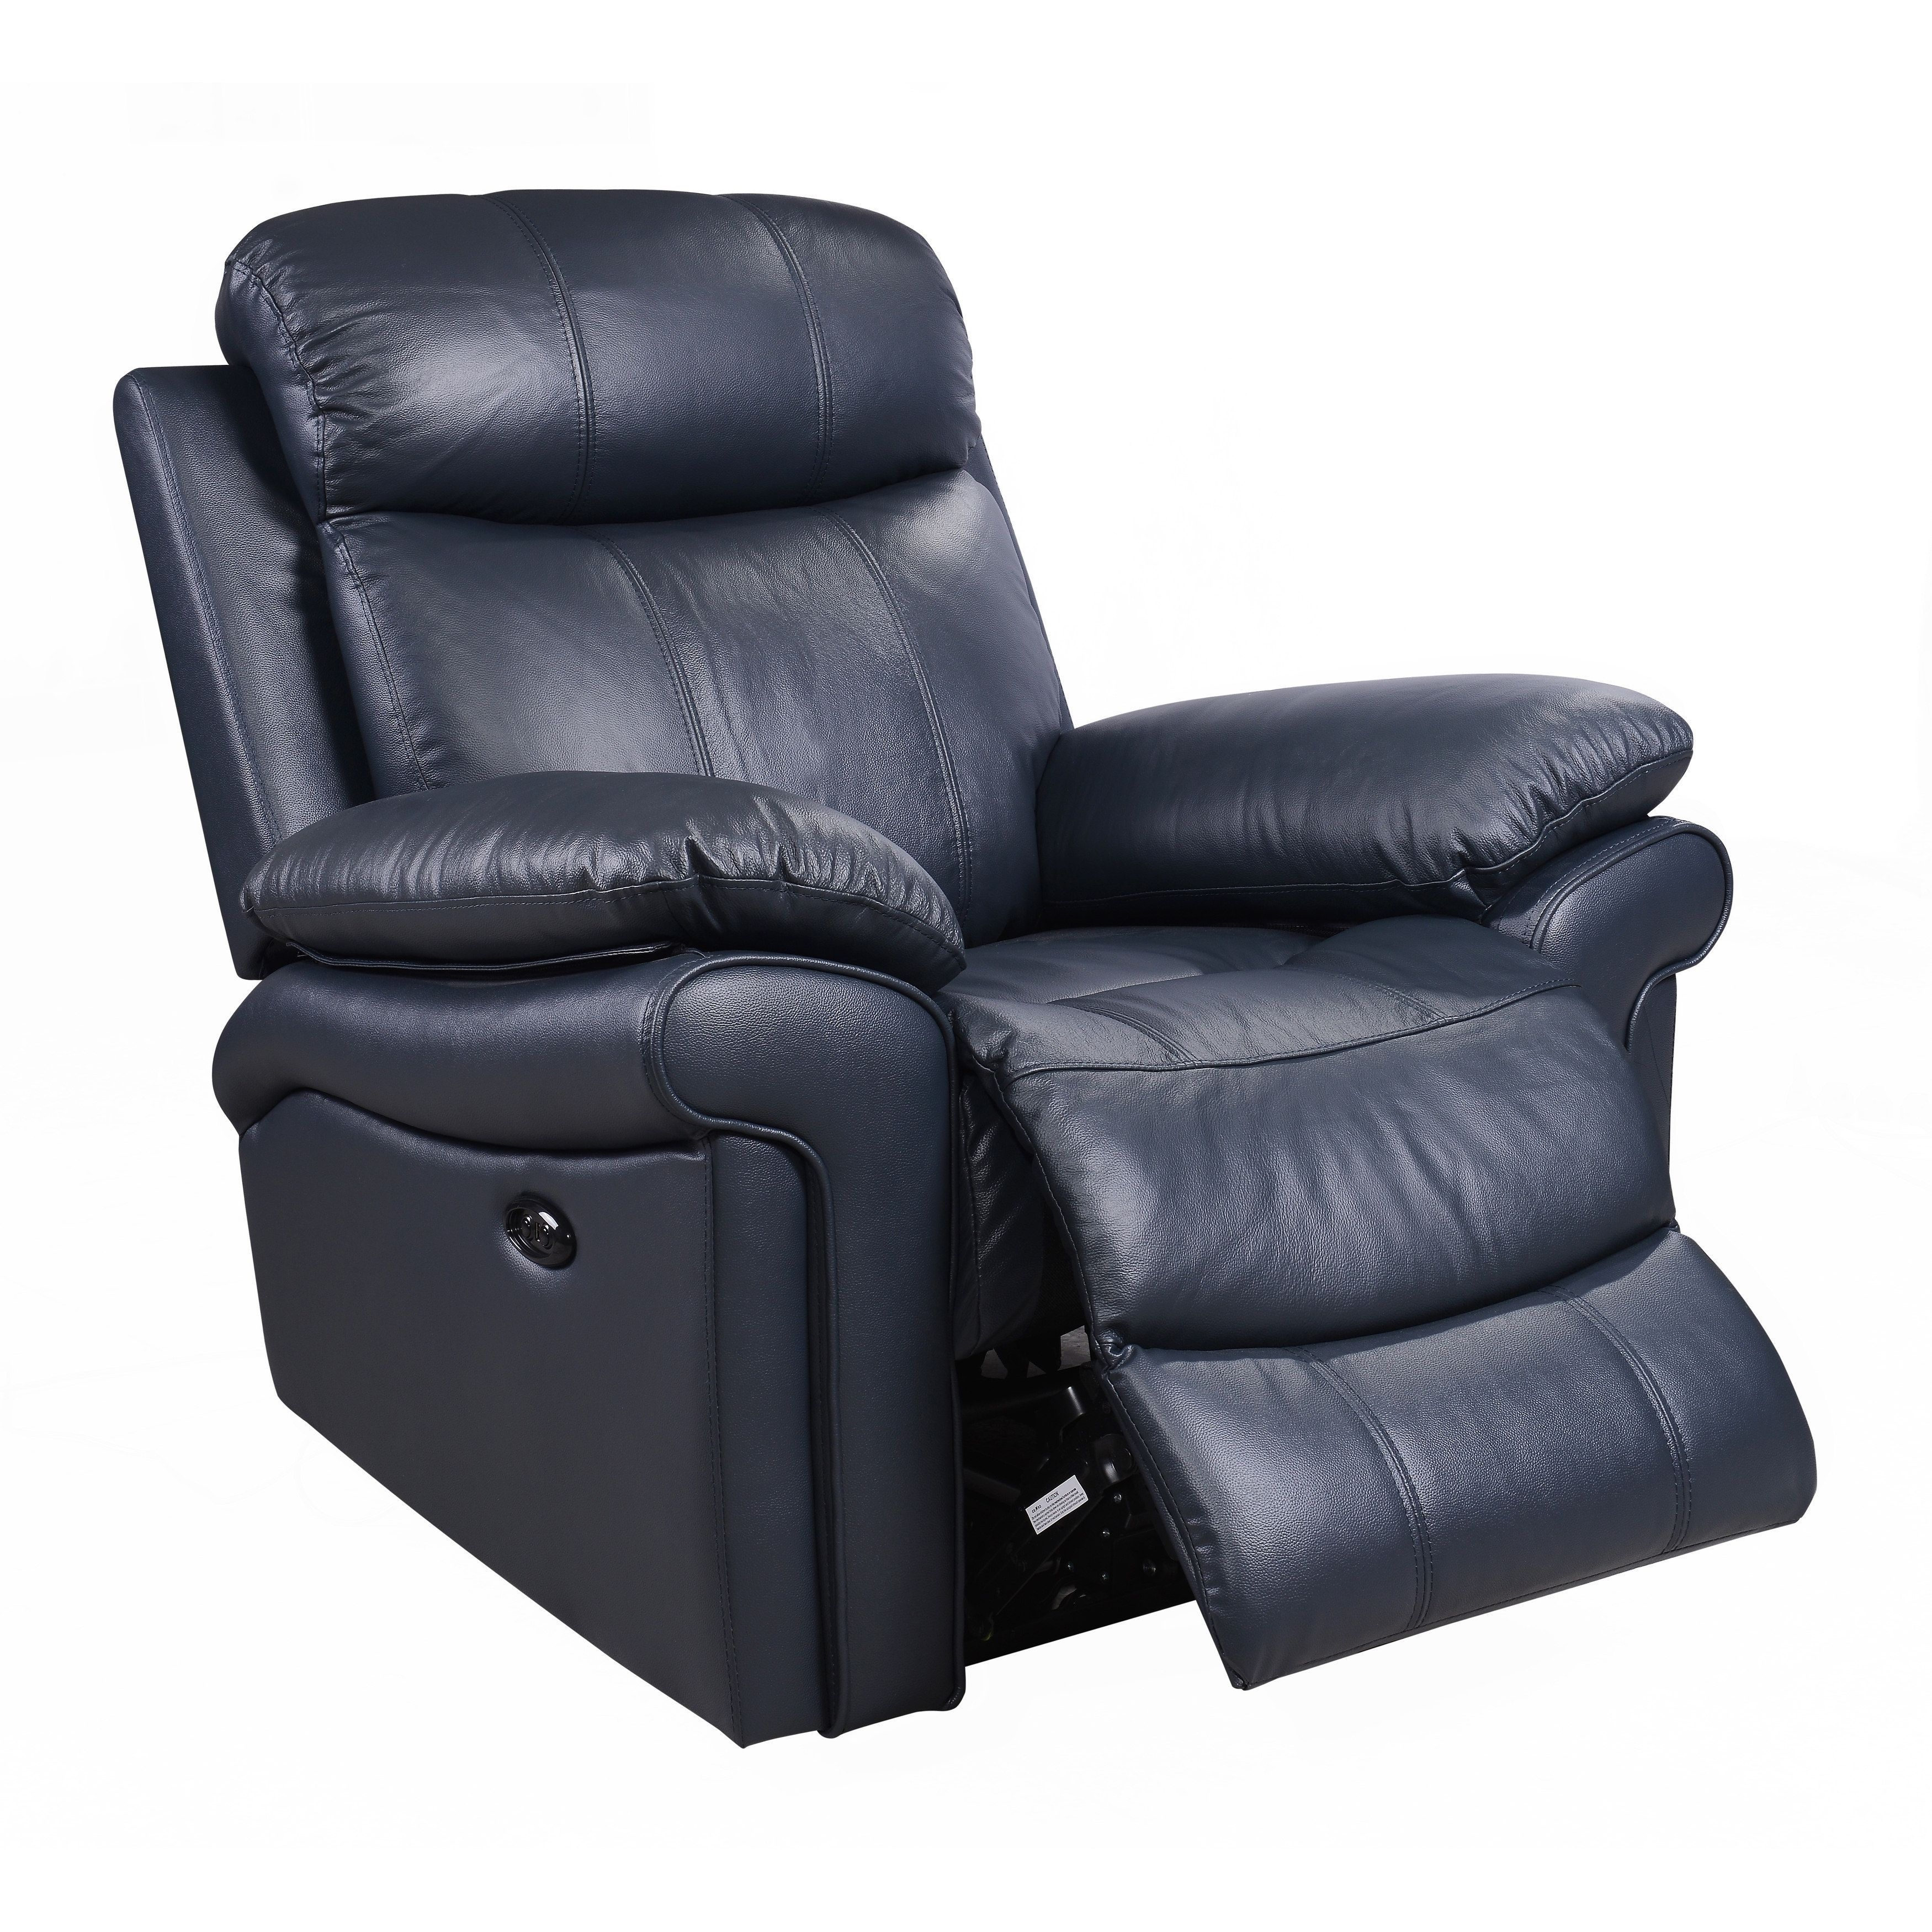 Electric Recliner Leather Chairs Hudson Top Grain Leather Power Recliner Brown Blue Red Blue